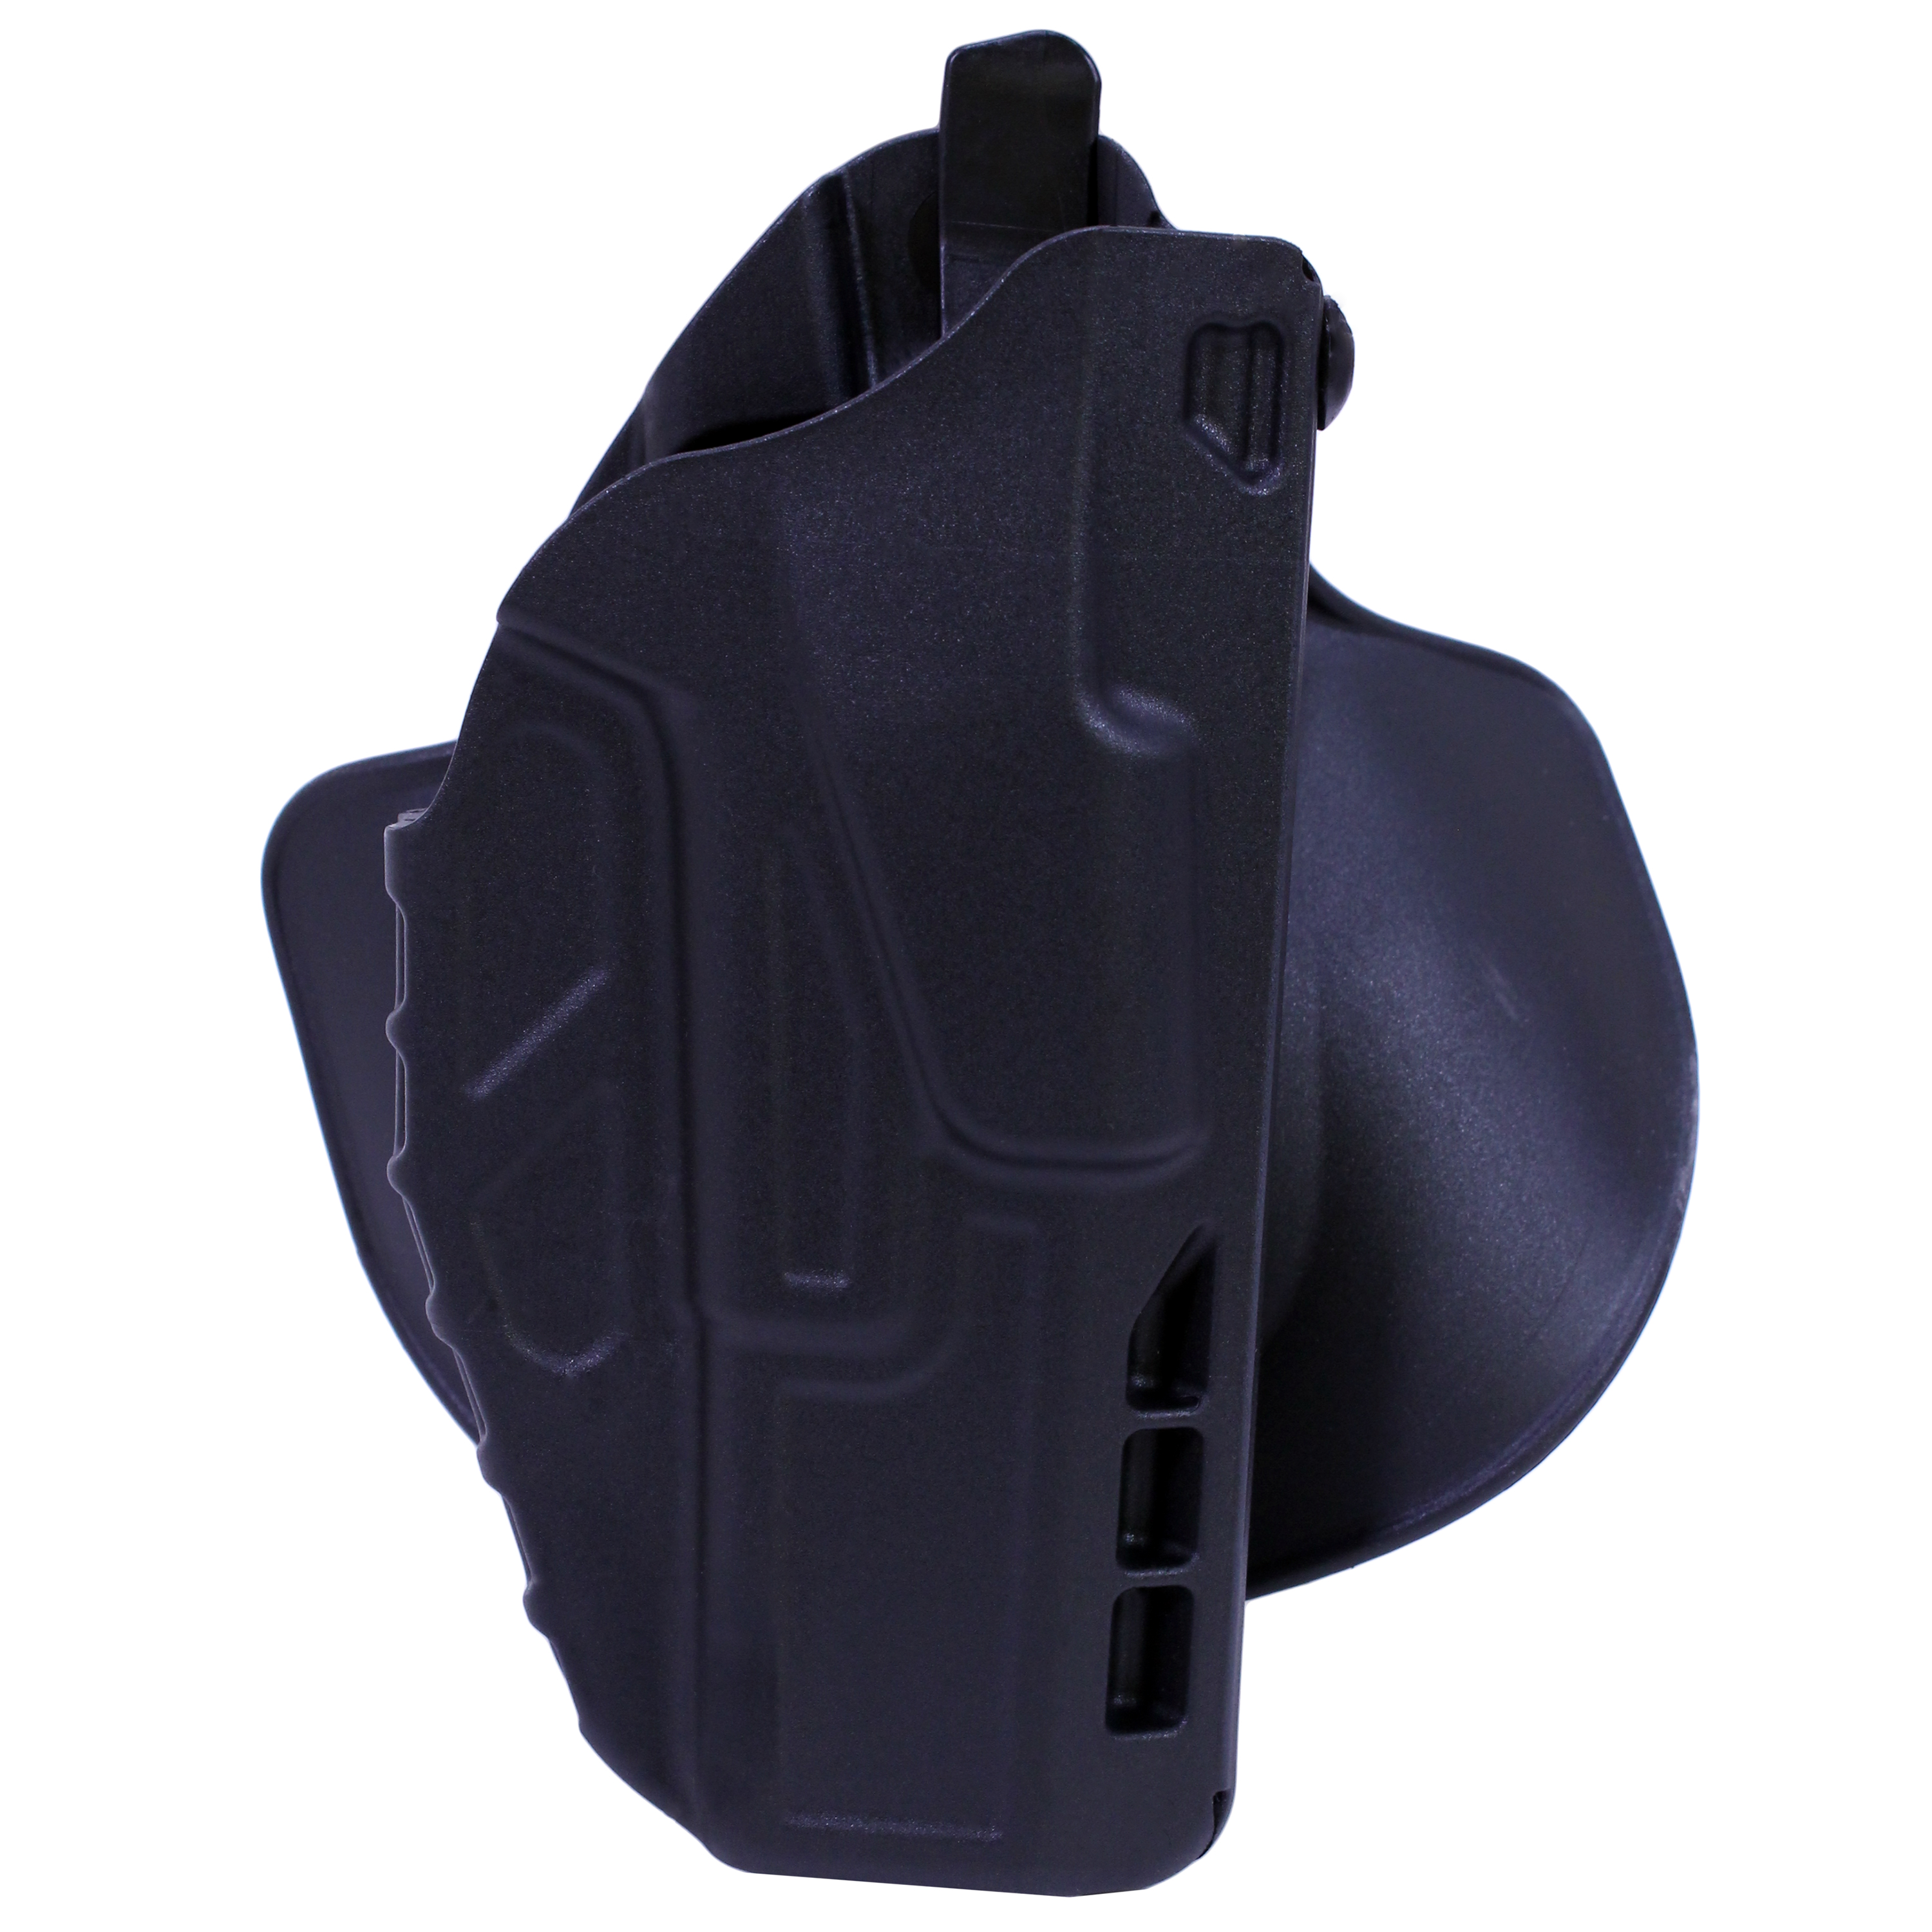 Safariland 7TS ALS Open Top Concealment Paddle Holster Glock 17 22, Plain Black, Right Hand by SAFARILAND